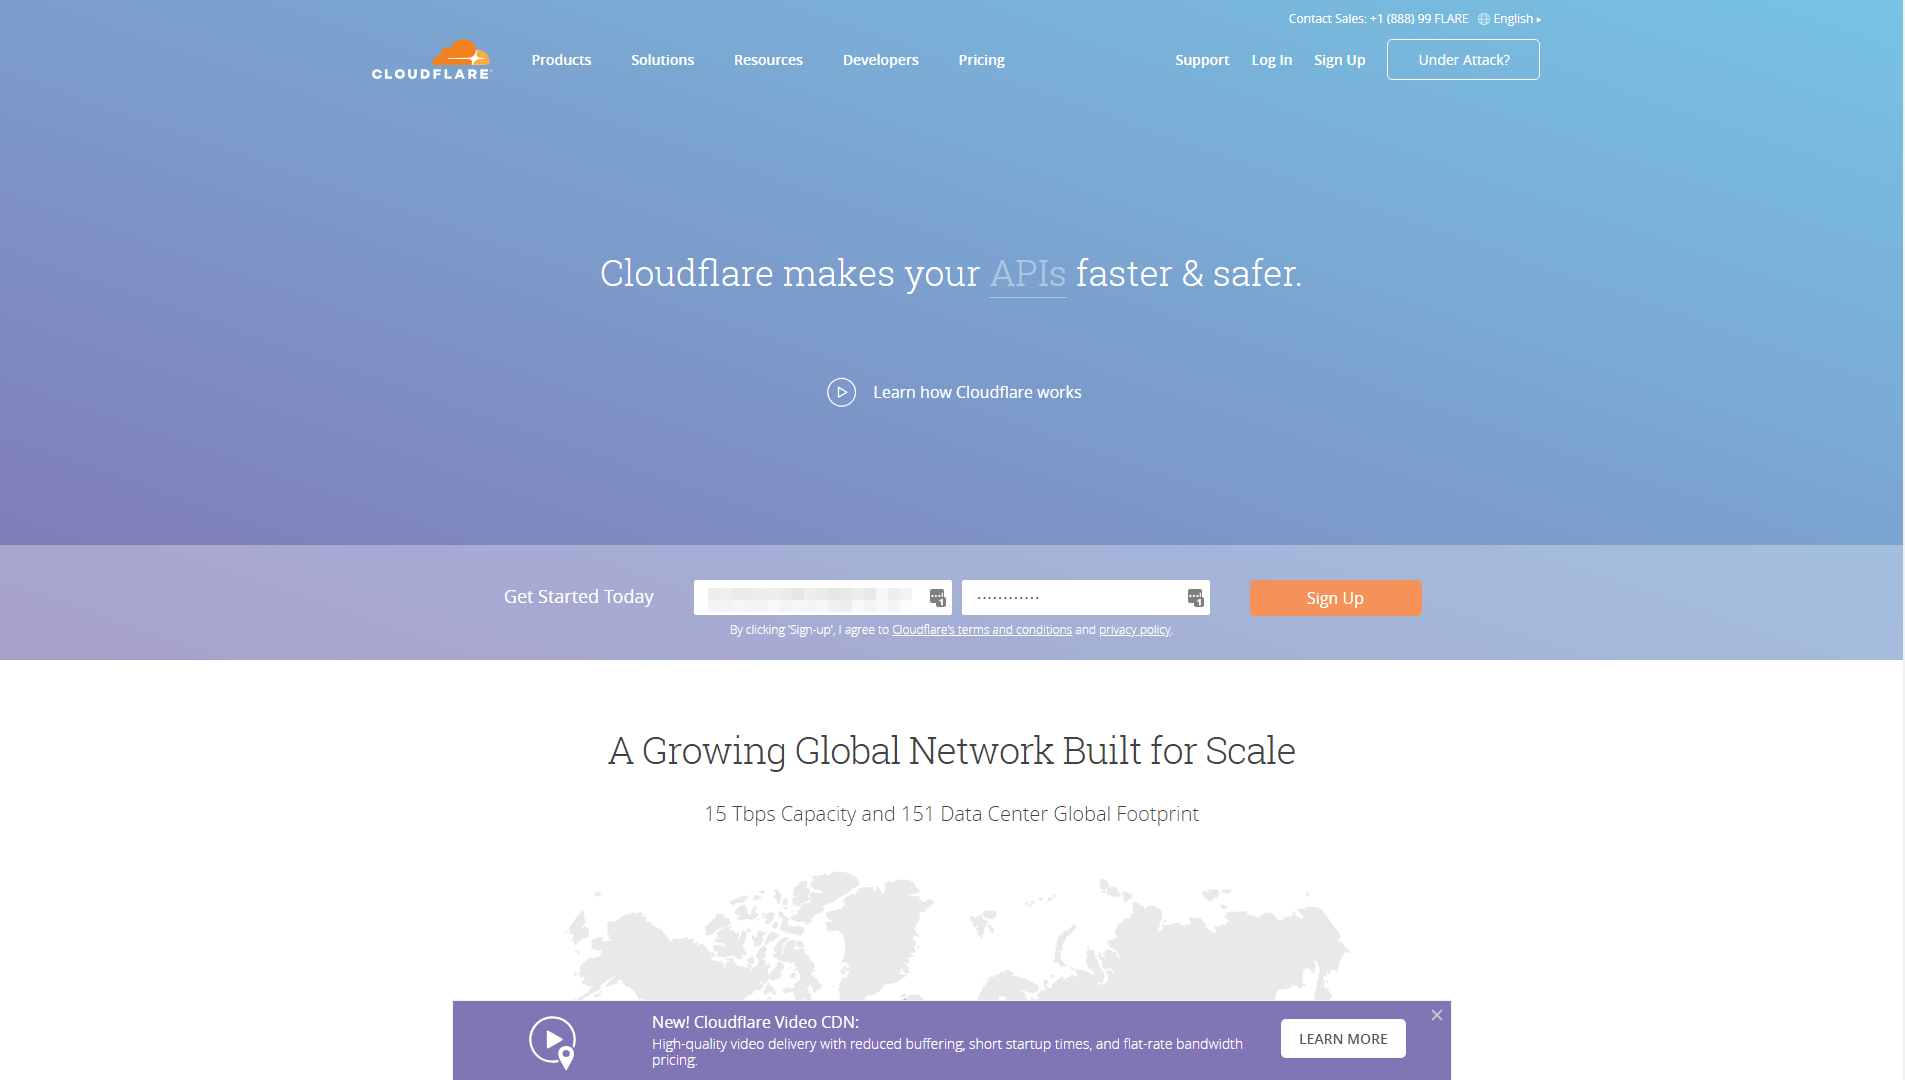 The Cloudflare homepage.